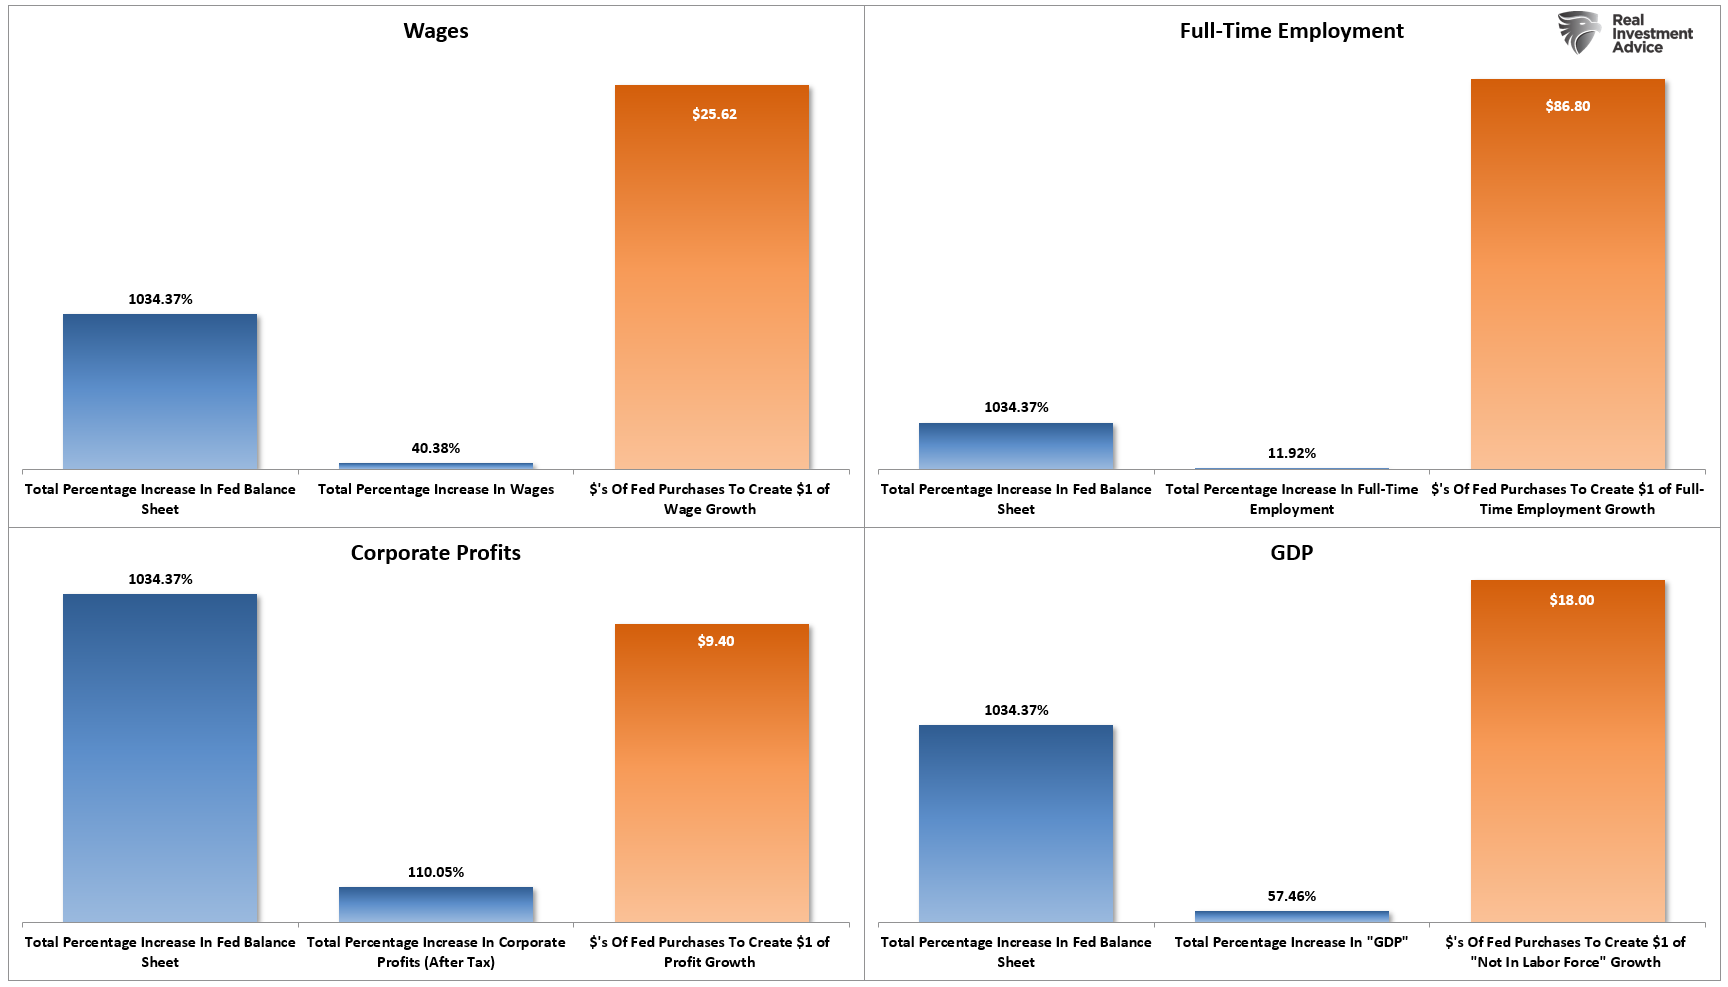 Data Fed Wealth Gap, The Data Shows The Fed Is Behind The Surging Wealth Gap